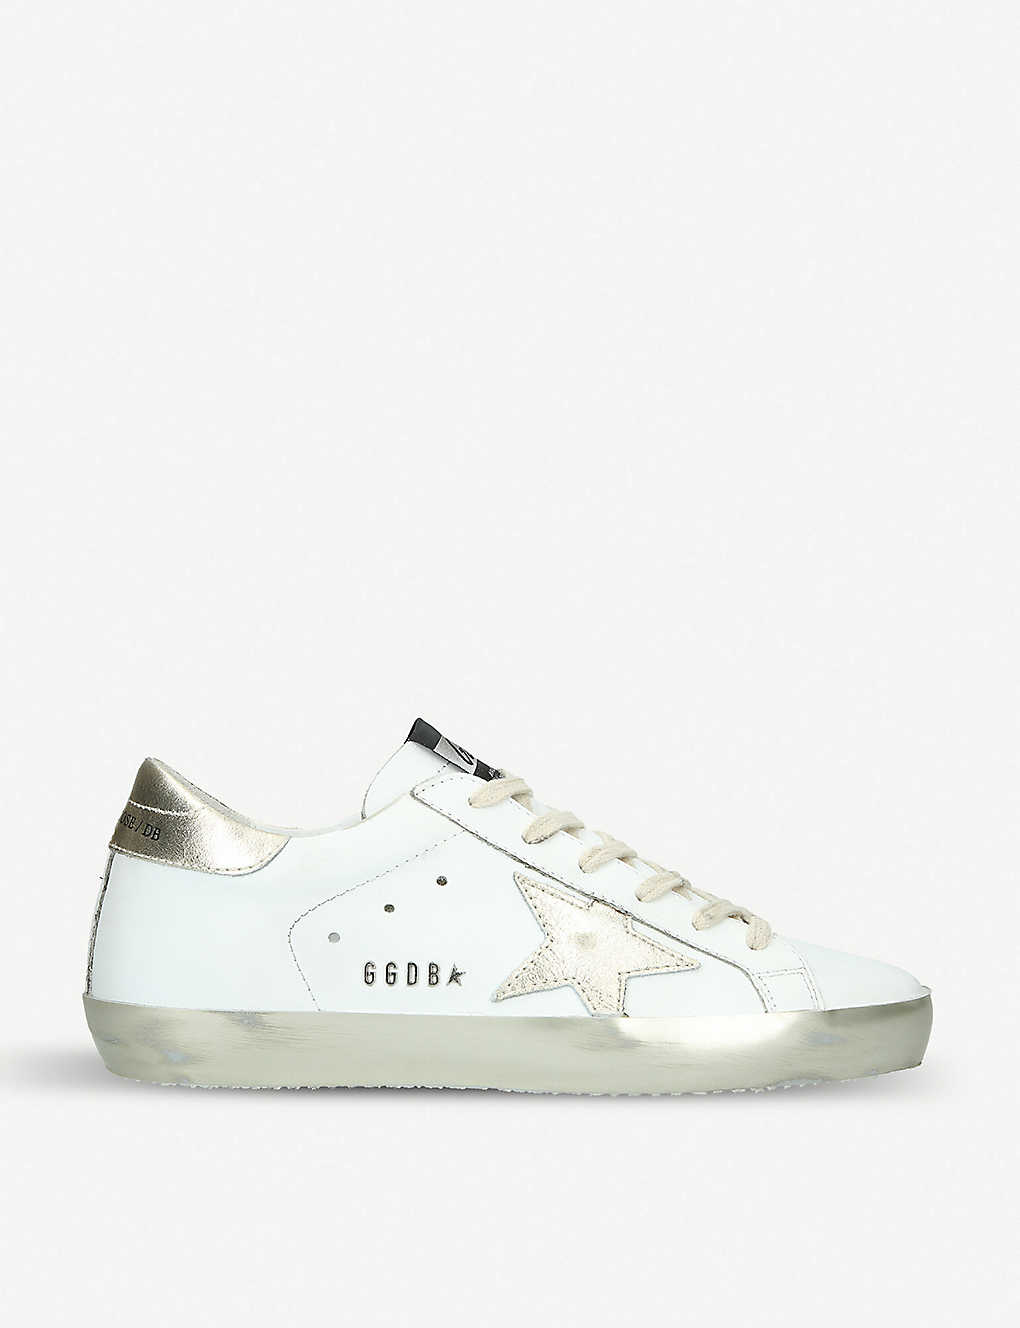 GOLDEN GOOSE: Superstar E37 Sparkle leather trainers